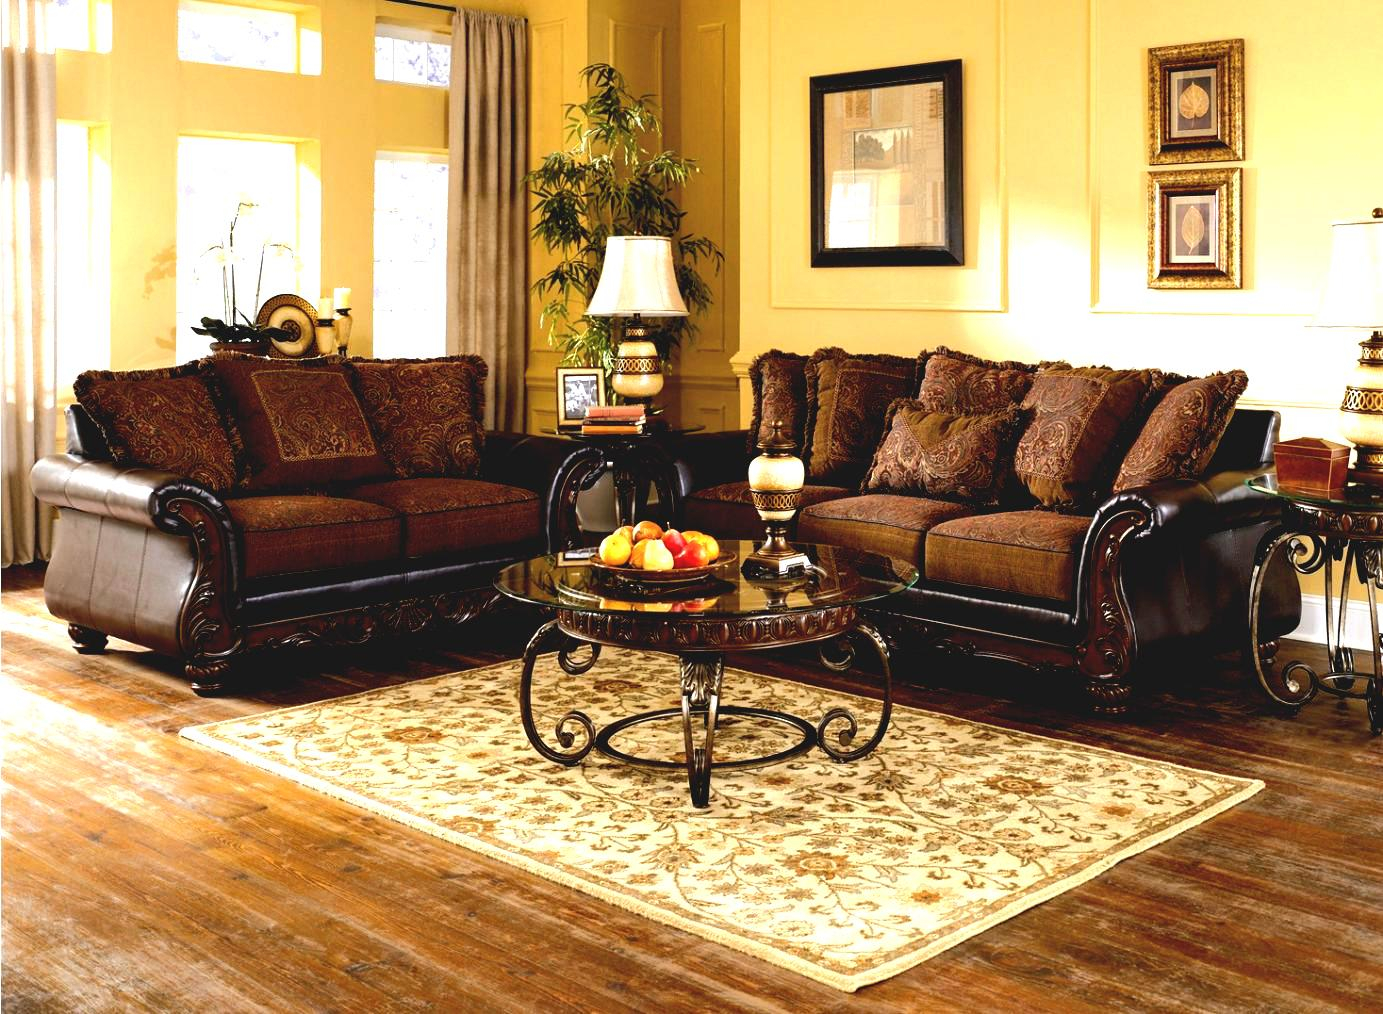 Furniture Top Design Of Ashley Couches For Contemporary Living Room intended for Ashley Living Room Sets Sale